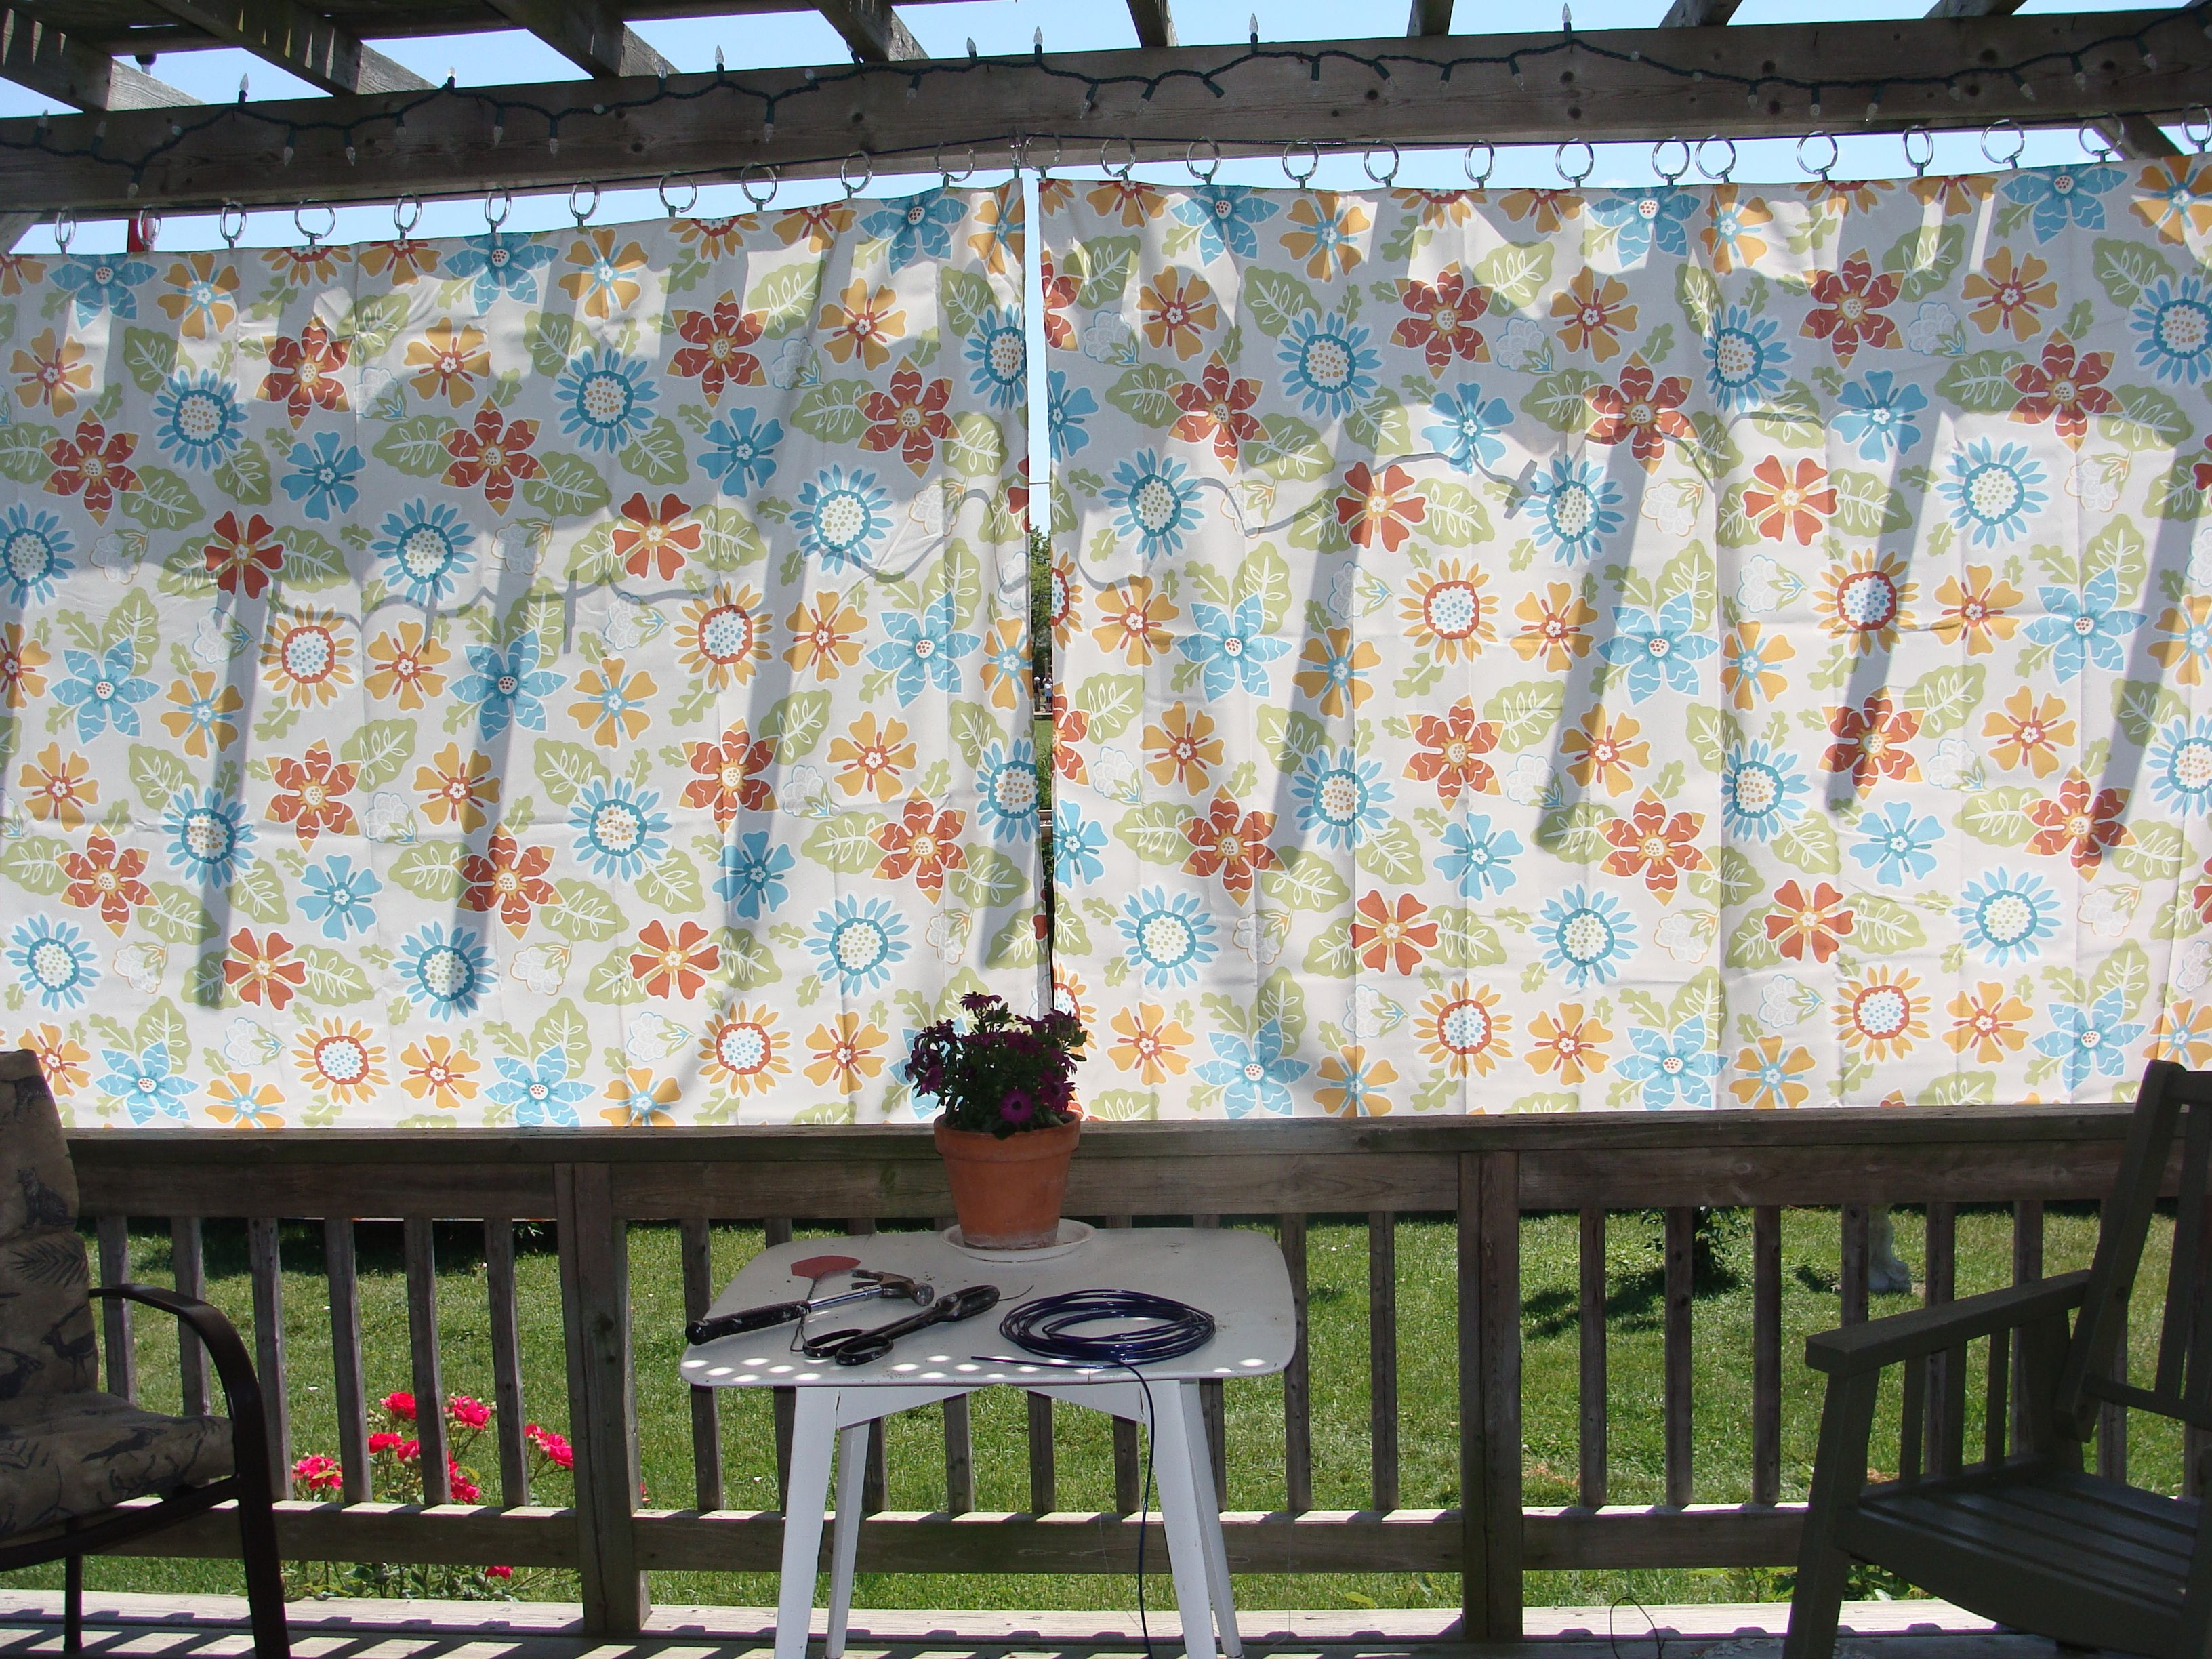 Outside window treatment ideas  using tablecloths to cover the clothesline outside andor for patio